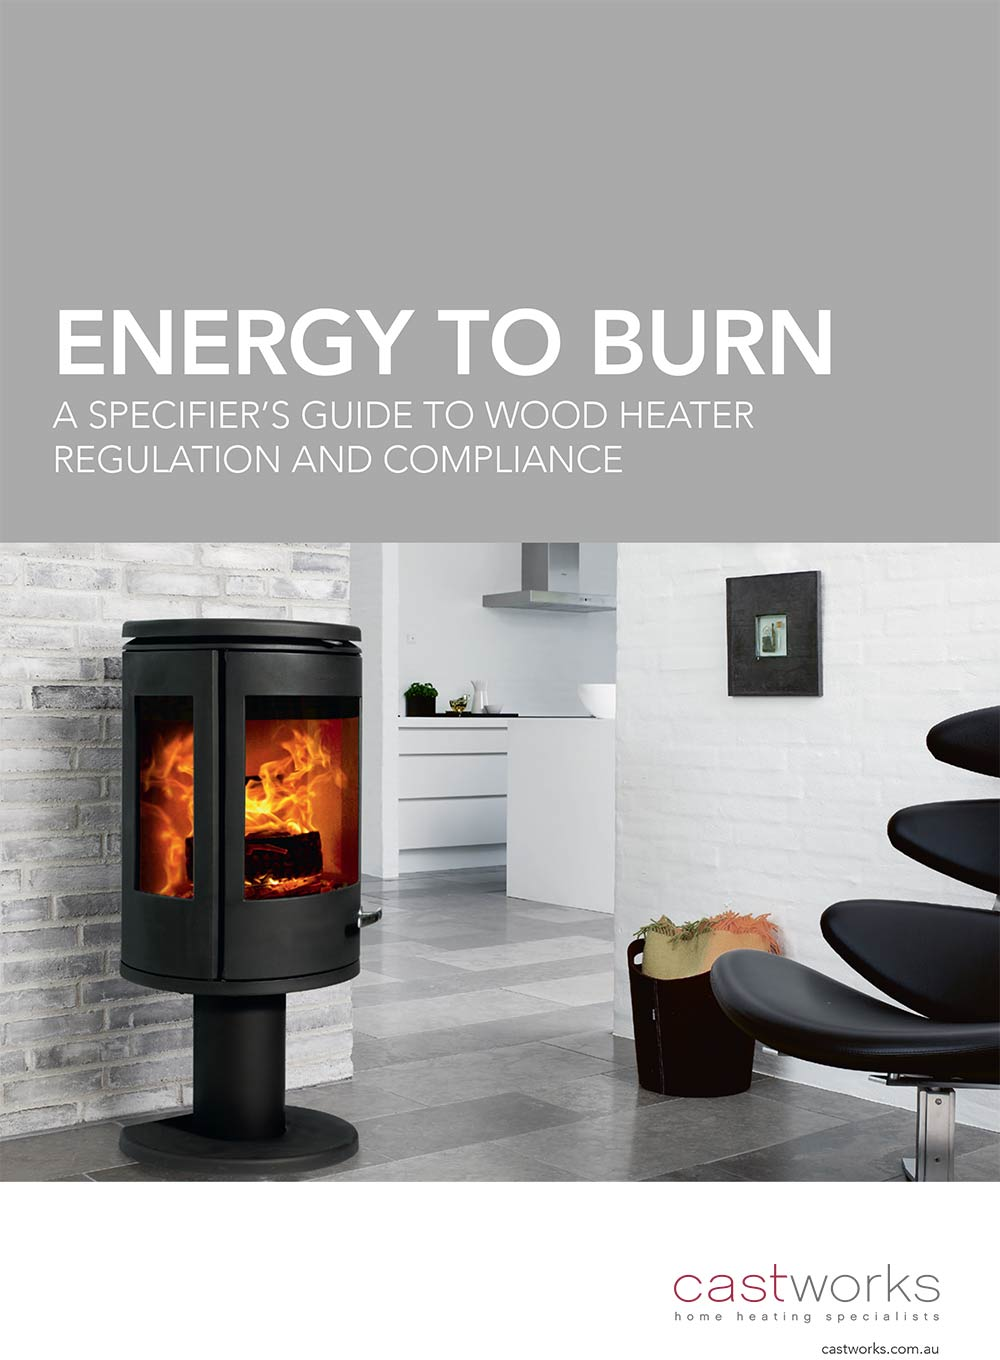 A specifier's guide to wood heater regulation | Architecture